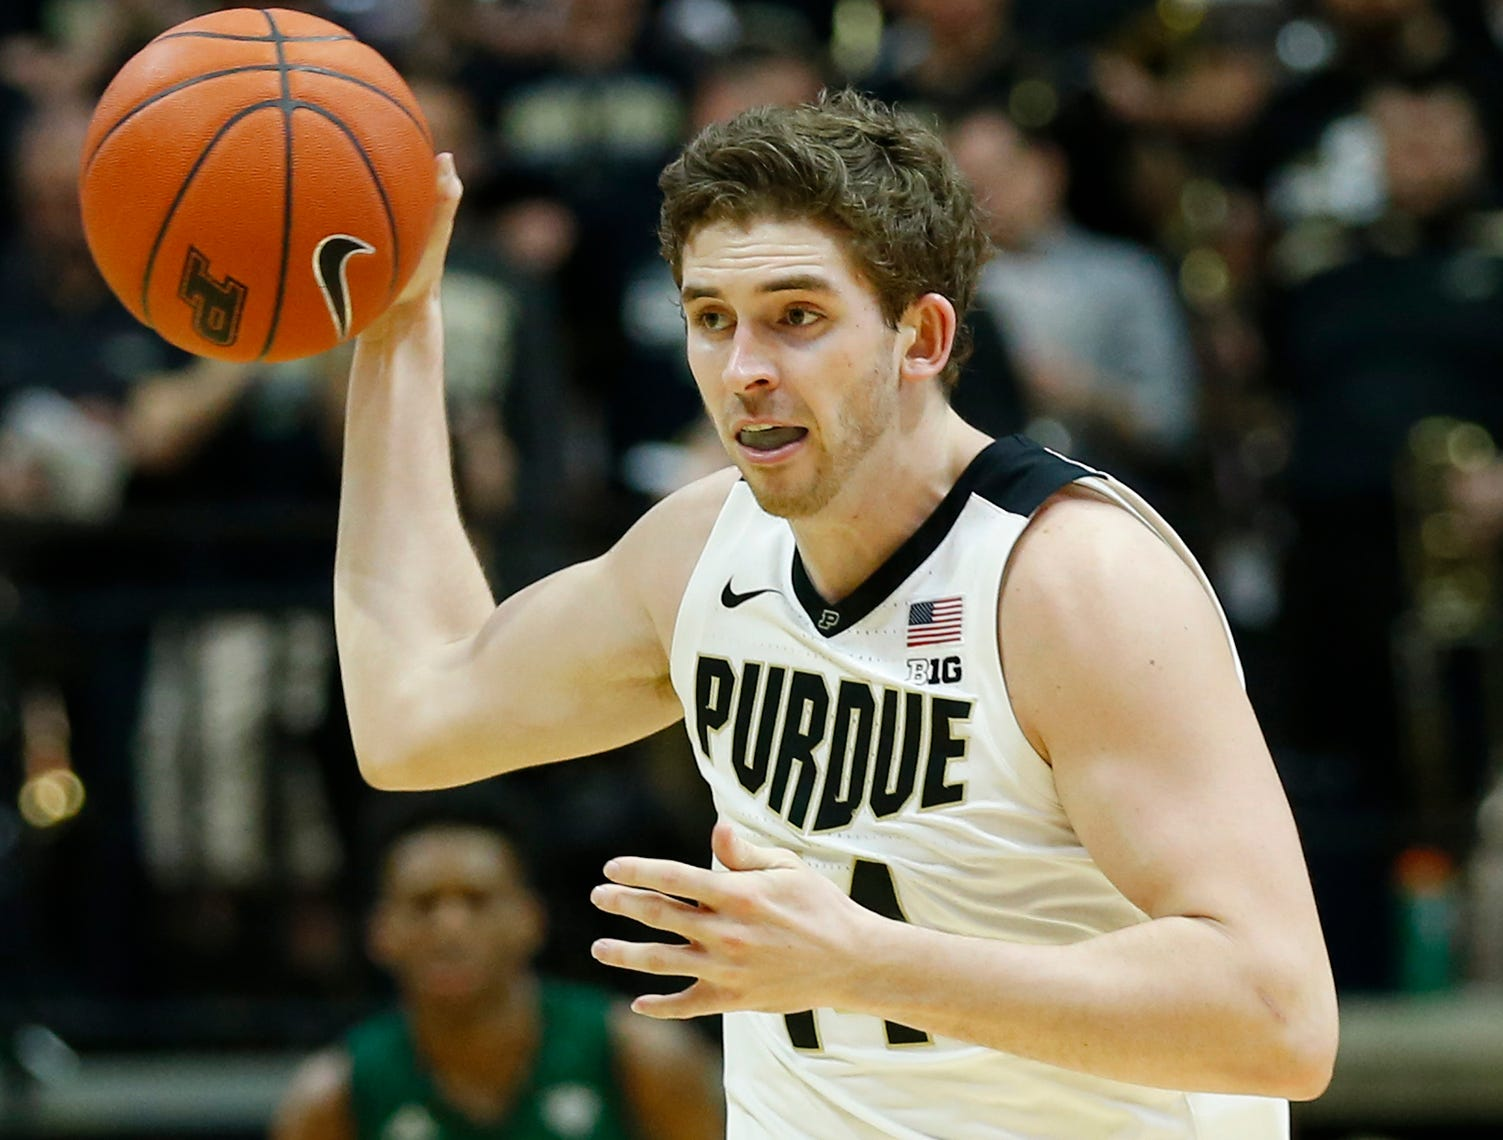 Ryan Cline of Purdue with a pass in transtition against Ohio Thursday, December 20, 2018, at Mackey Arena. Purdue defeated Ohio 95-67.